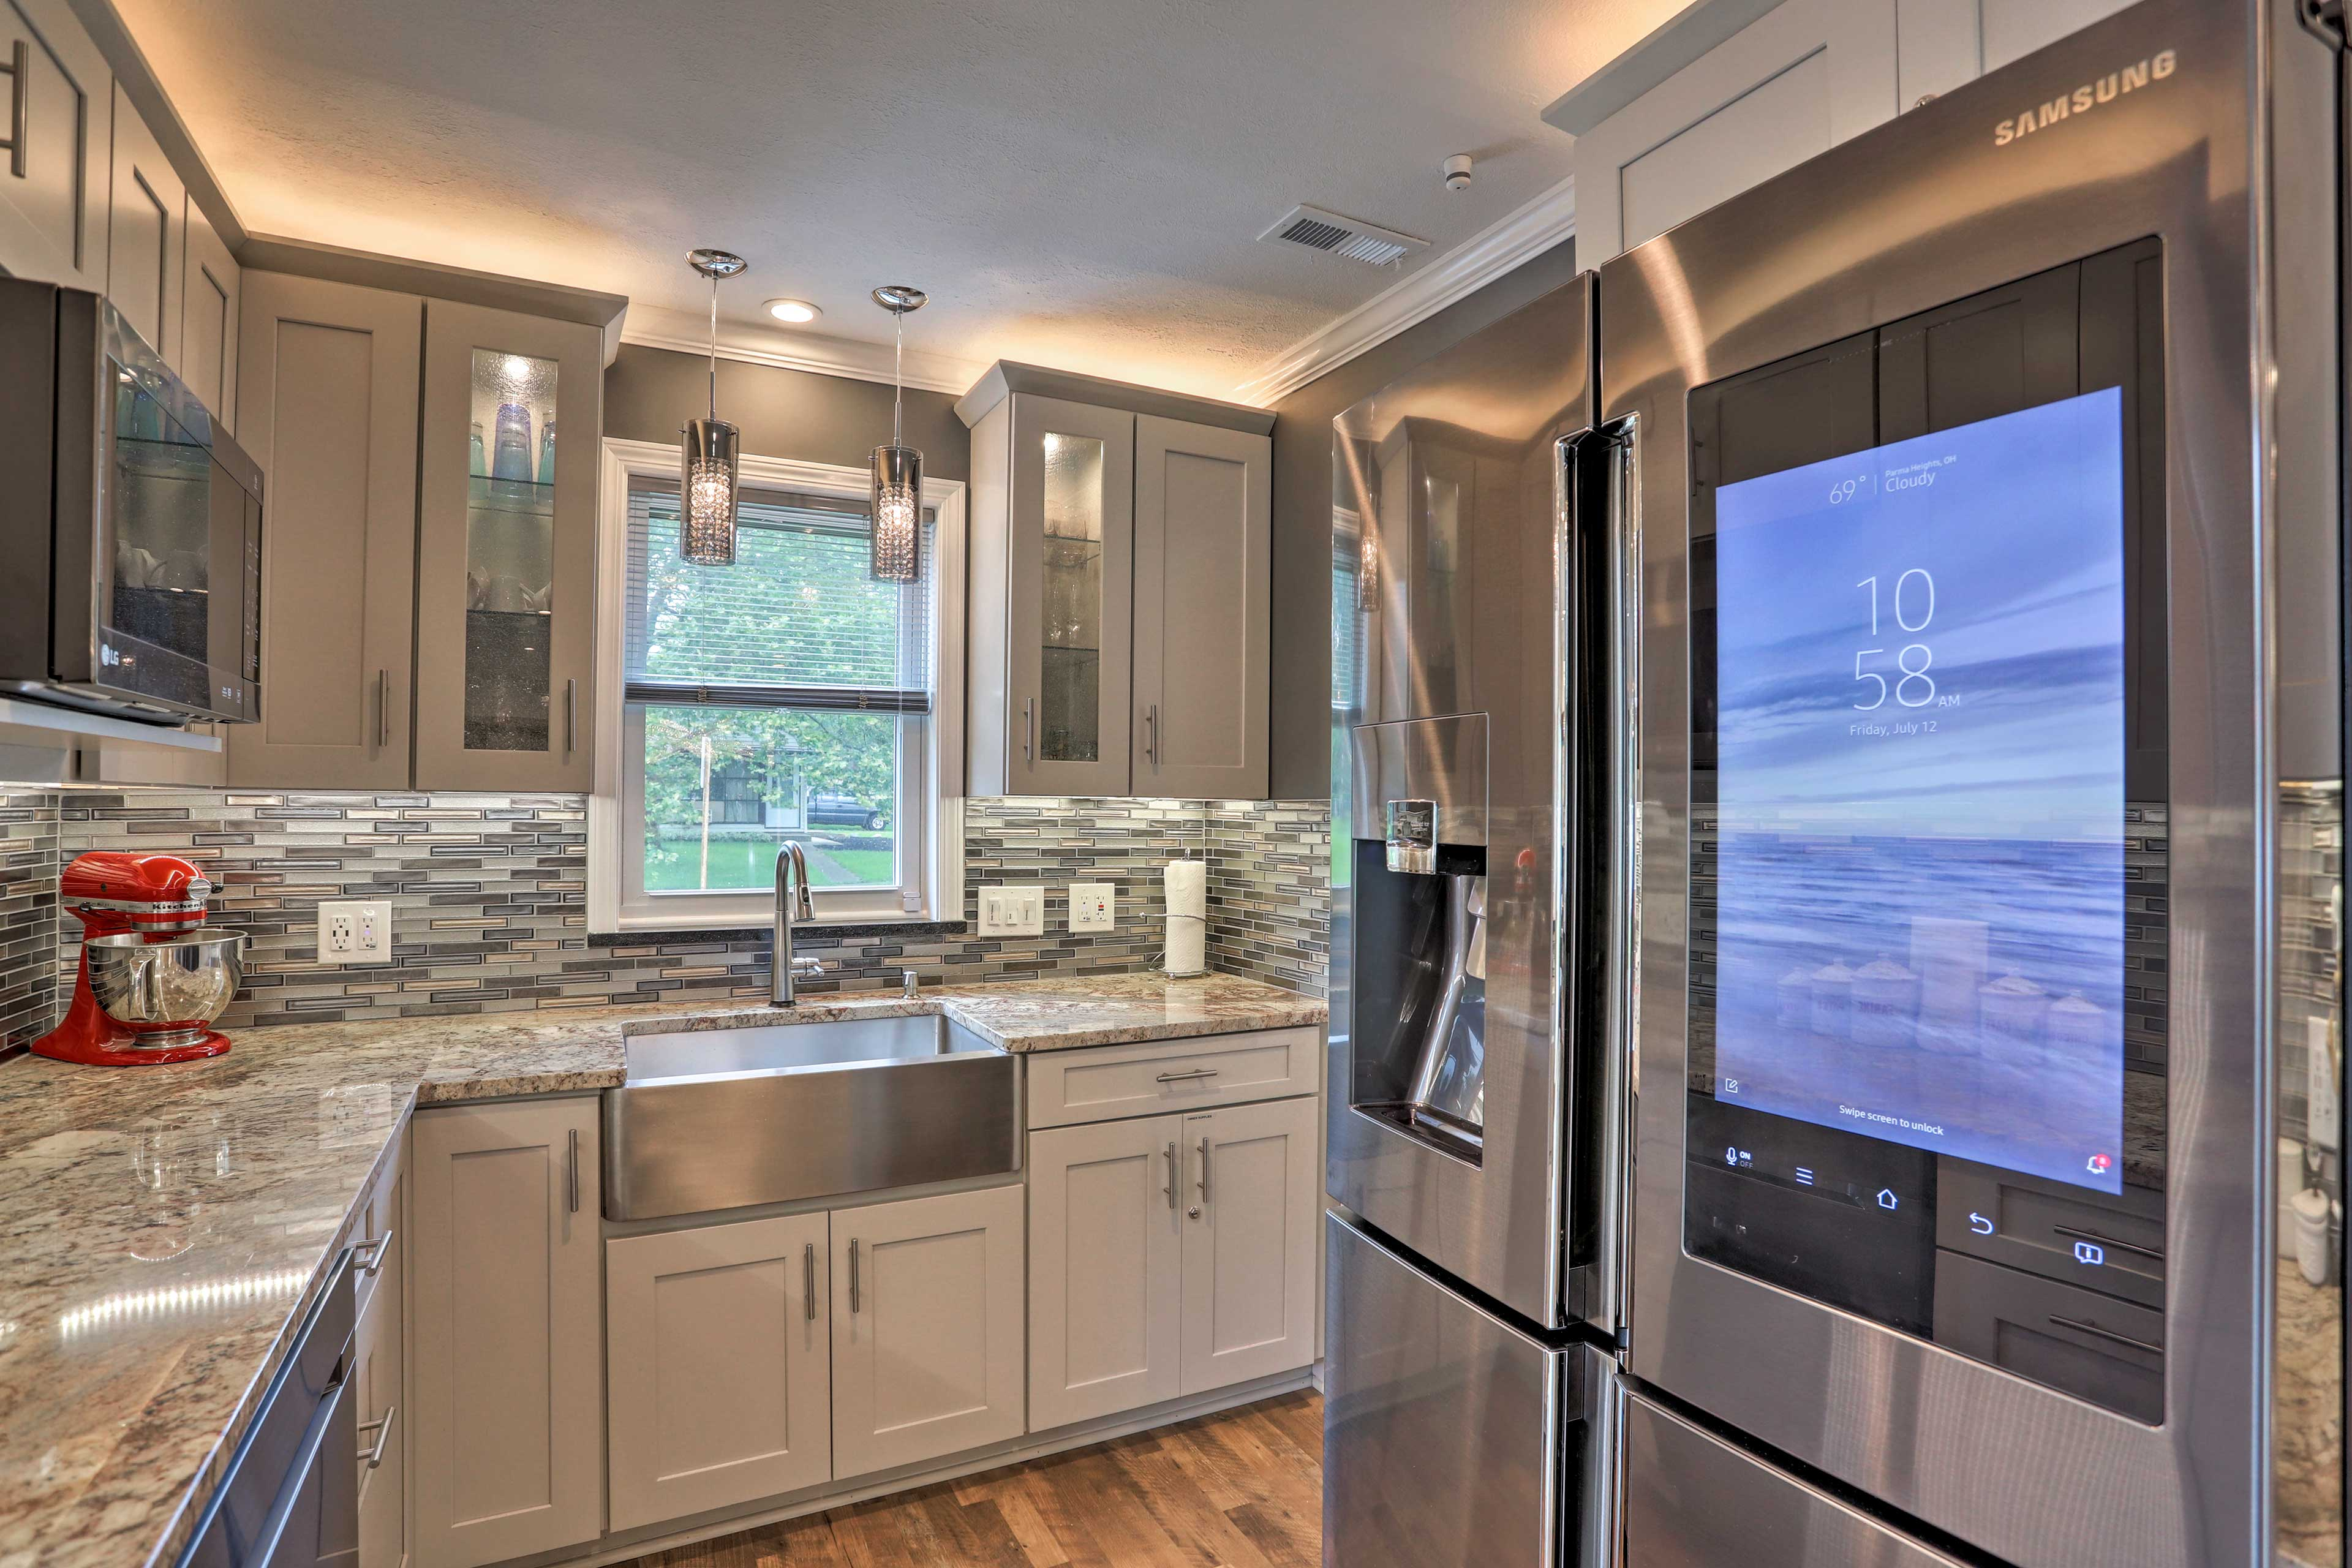 Enjoy the stainless steel appliances!